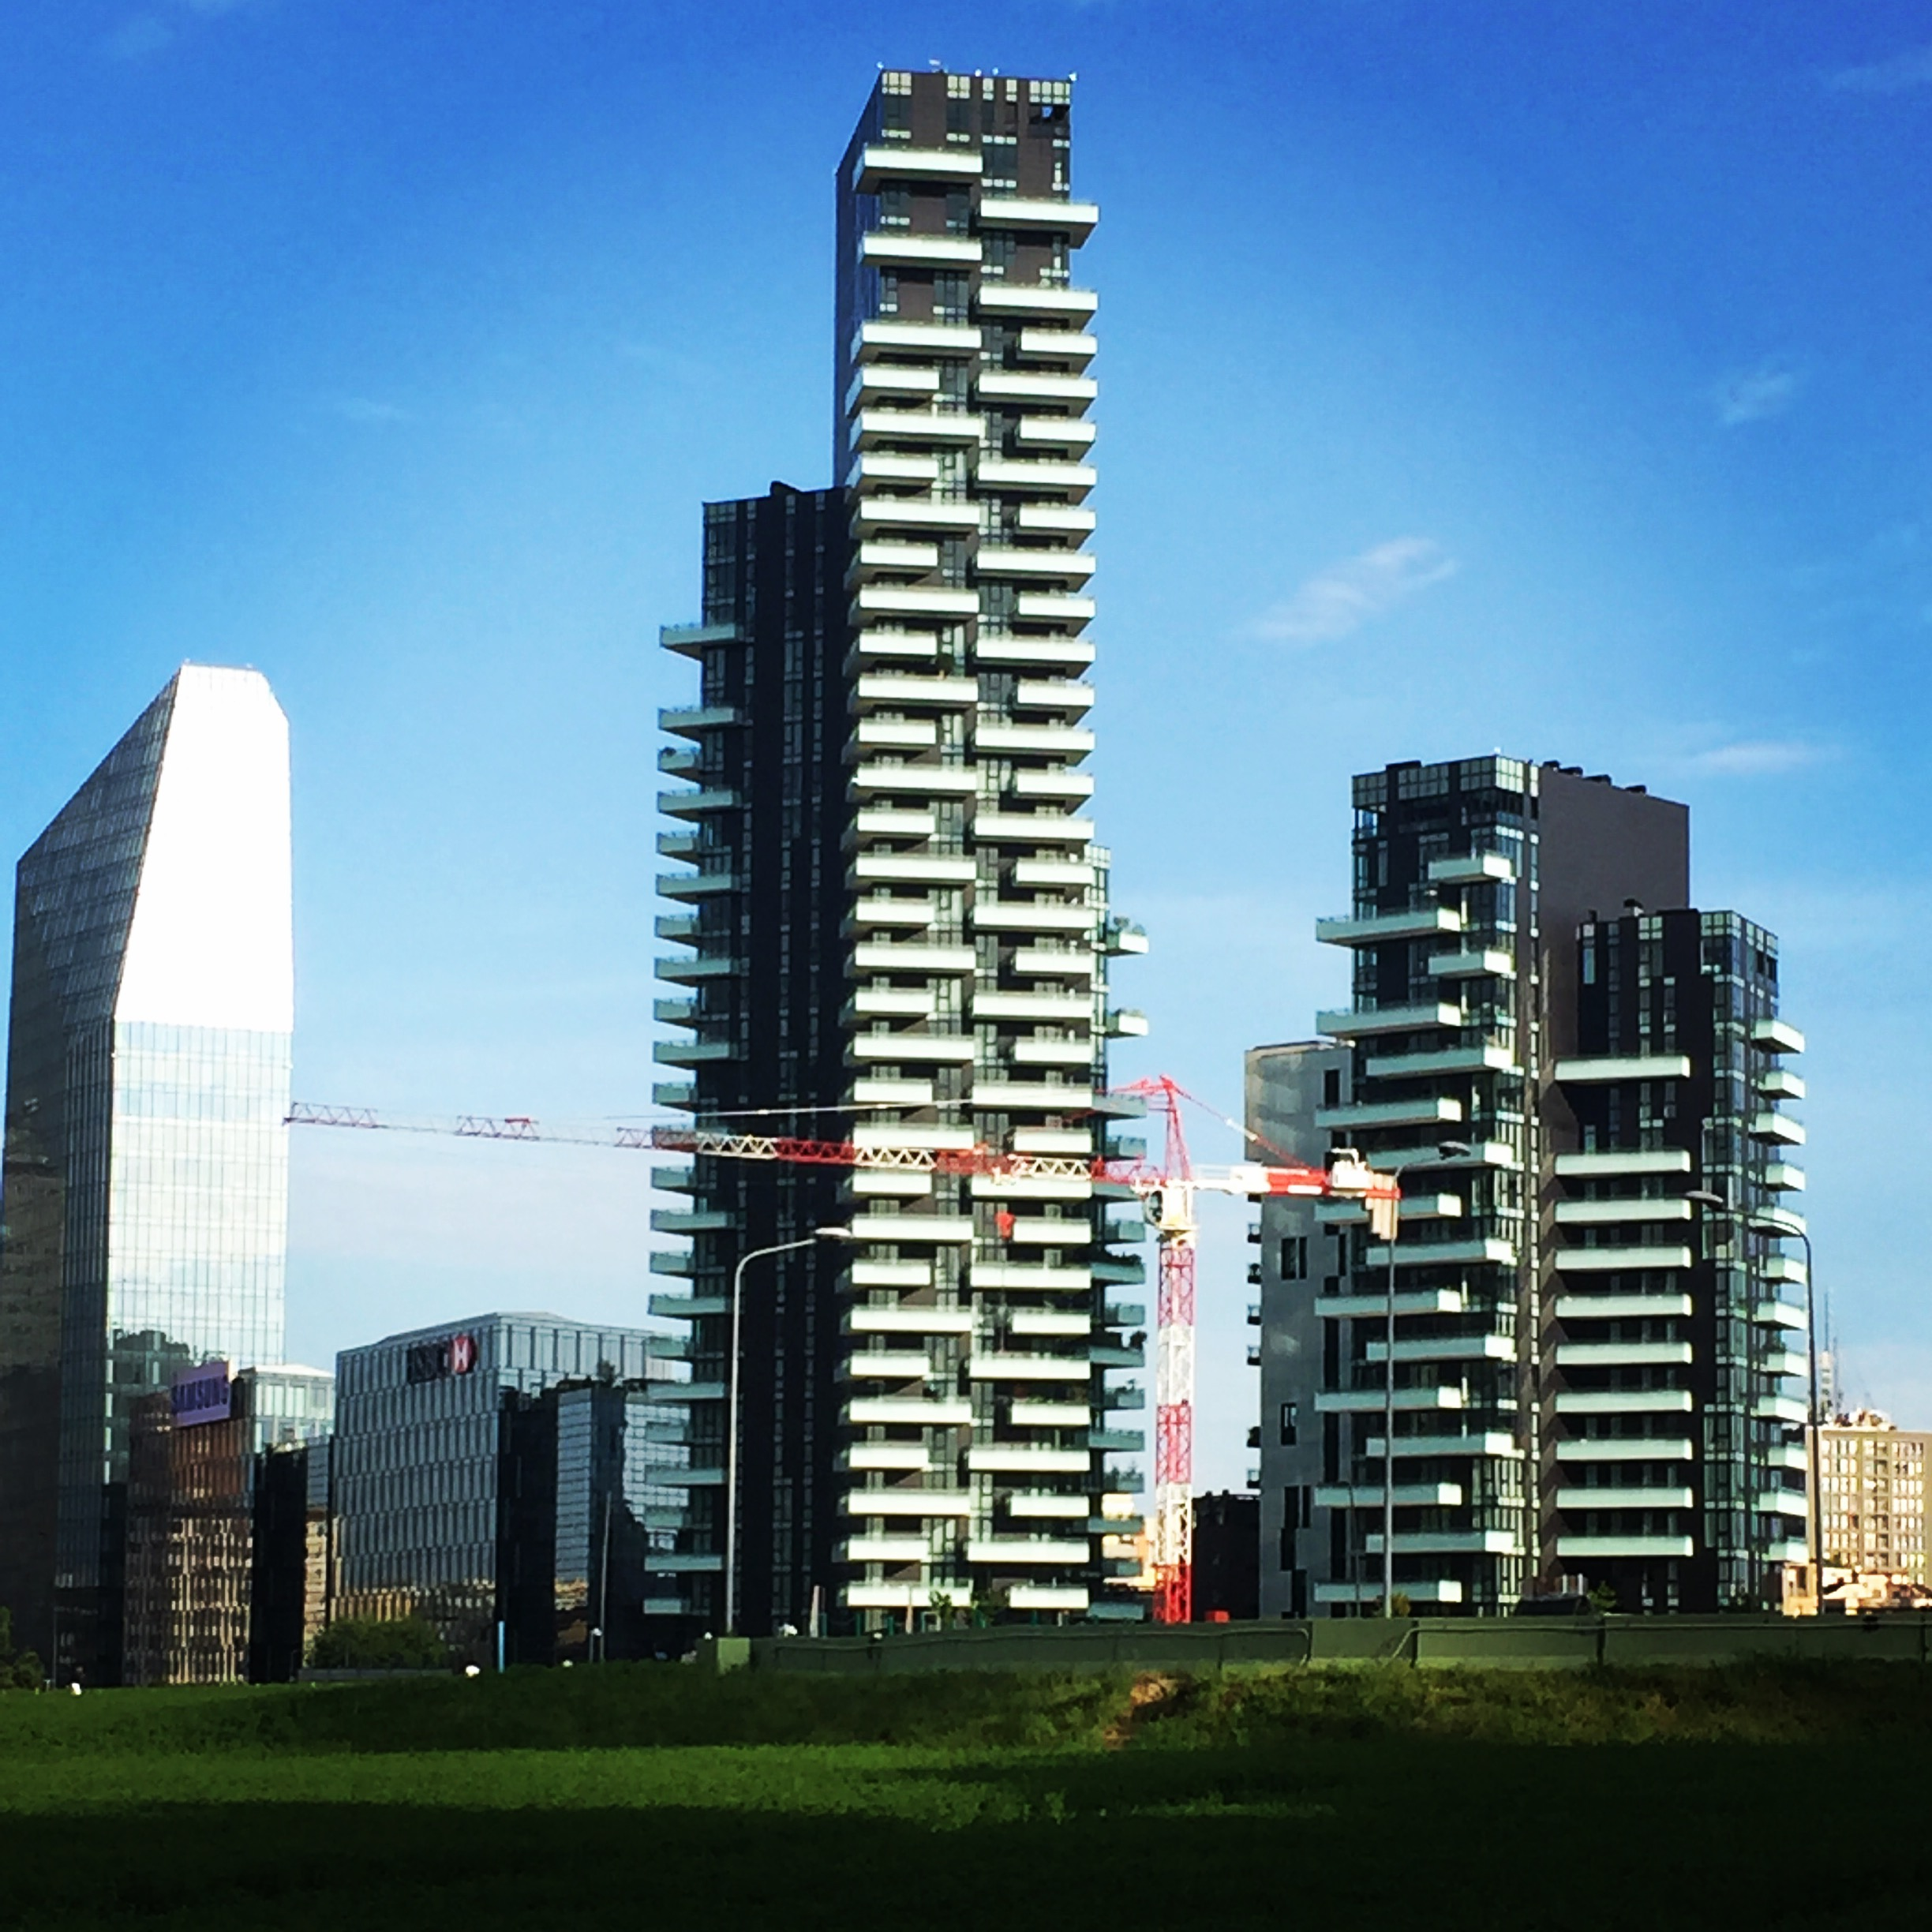 porta-nuova-district